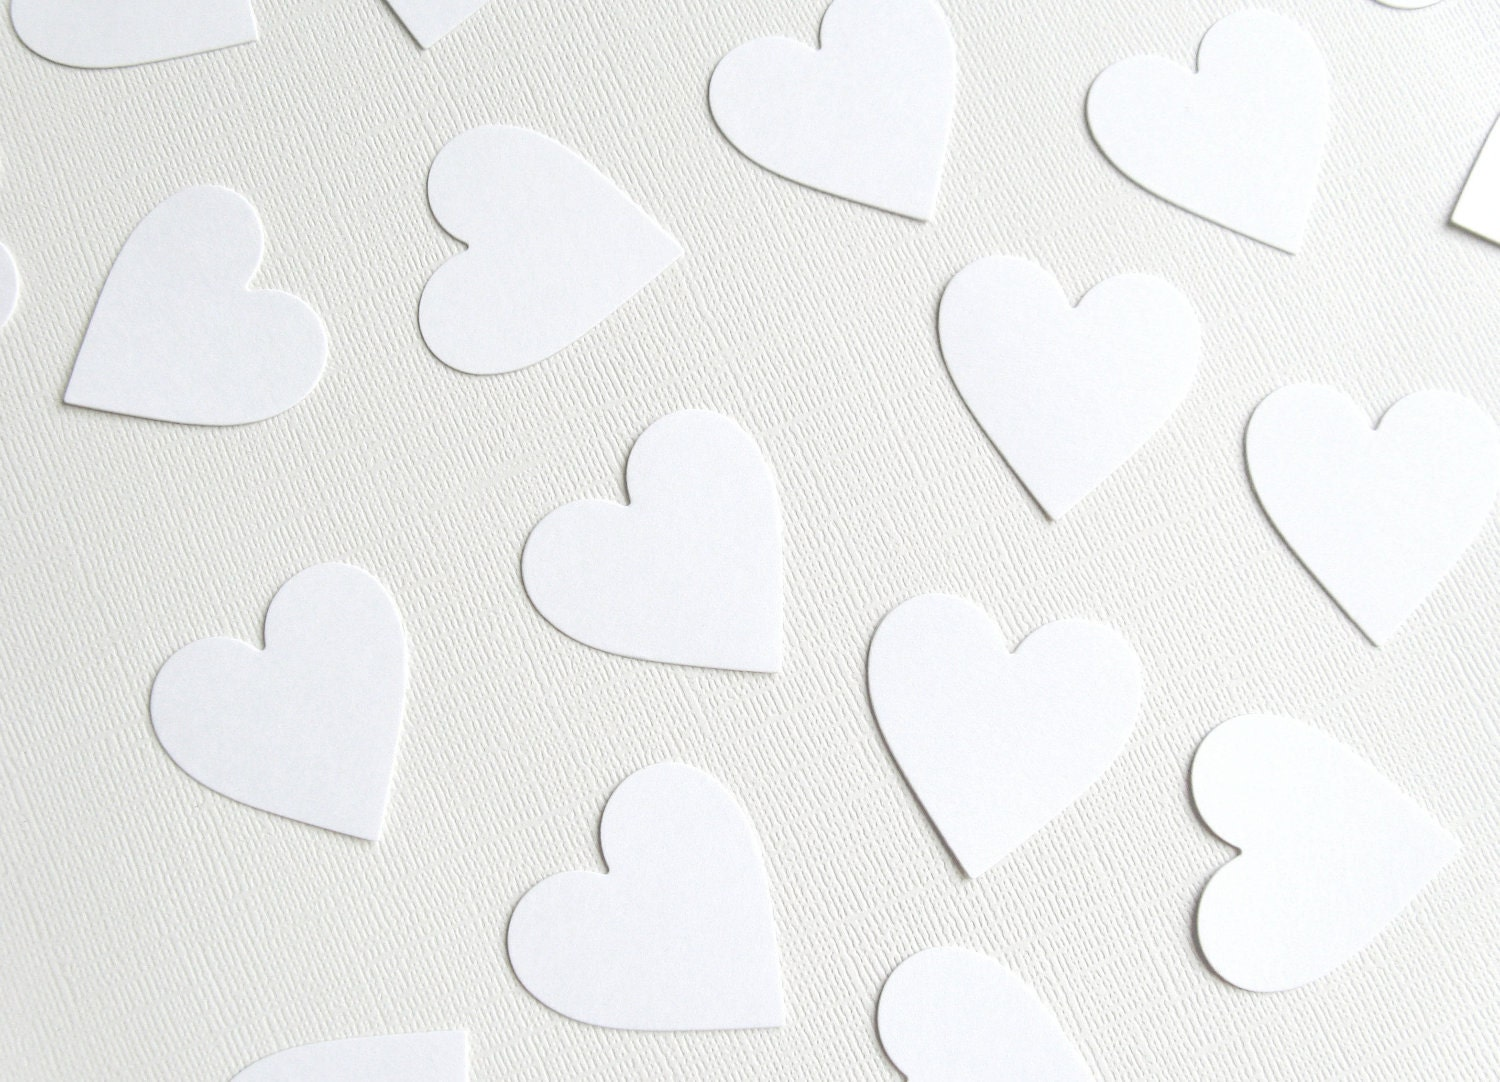 100 Handmade Large Die Cut Hearts, White, Confetti, Embellishments, Weddings